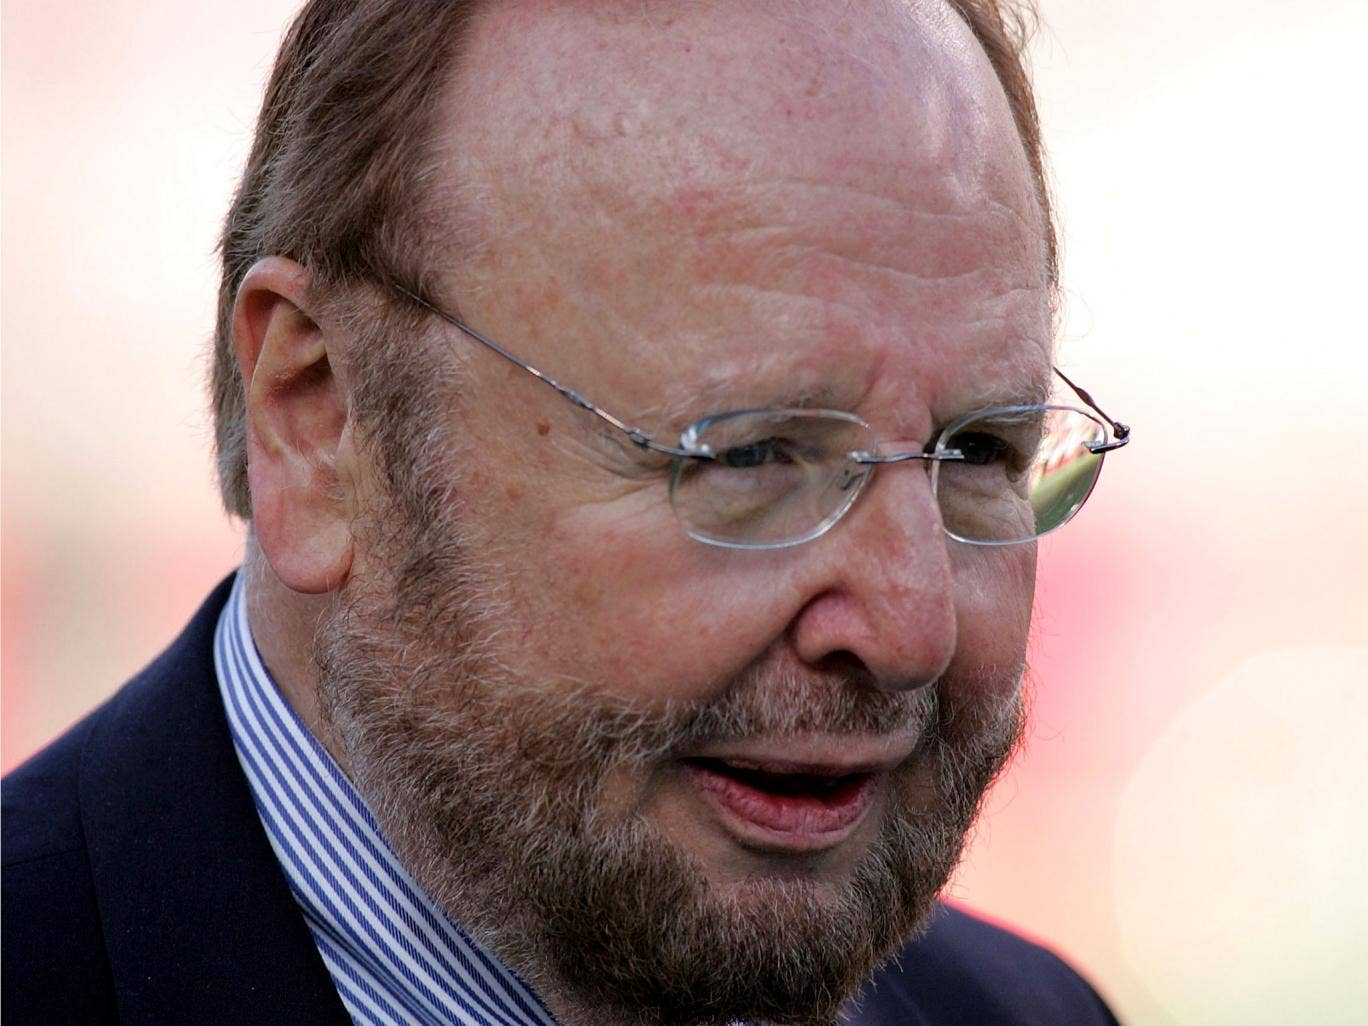 Malcolm Glazer took over Manchester United in 2005 to bitter opposition from fans